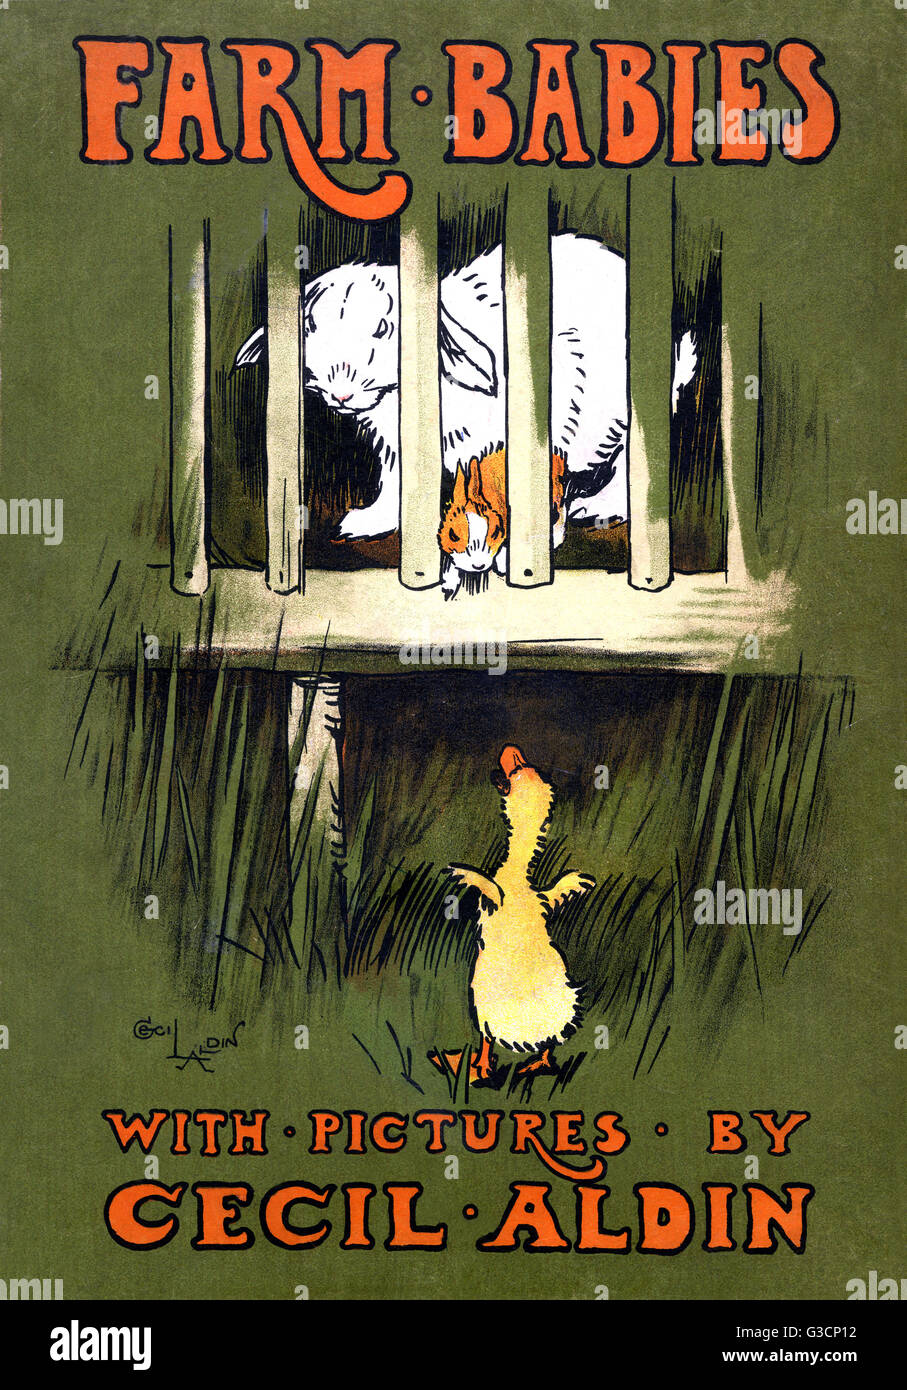 Animal Farm Book Cover High Resolution Stock Photography And Images Alamy